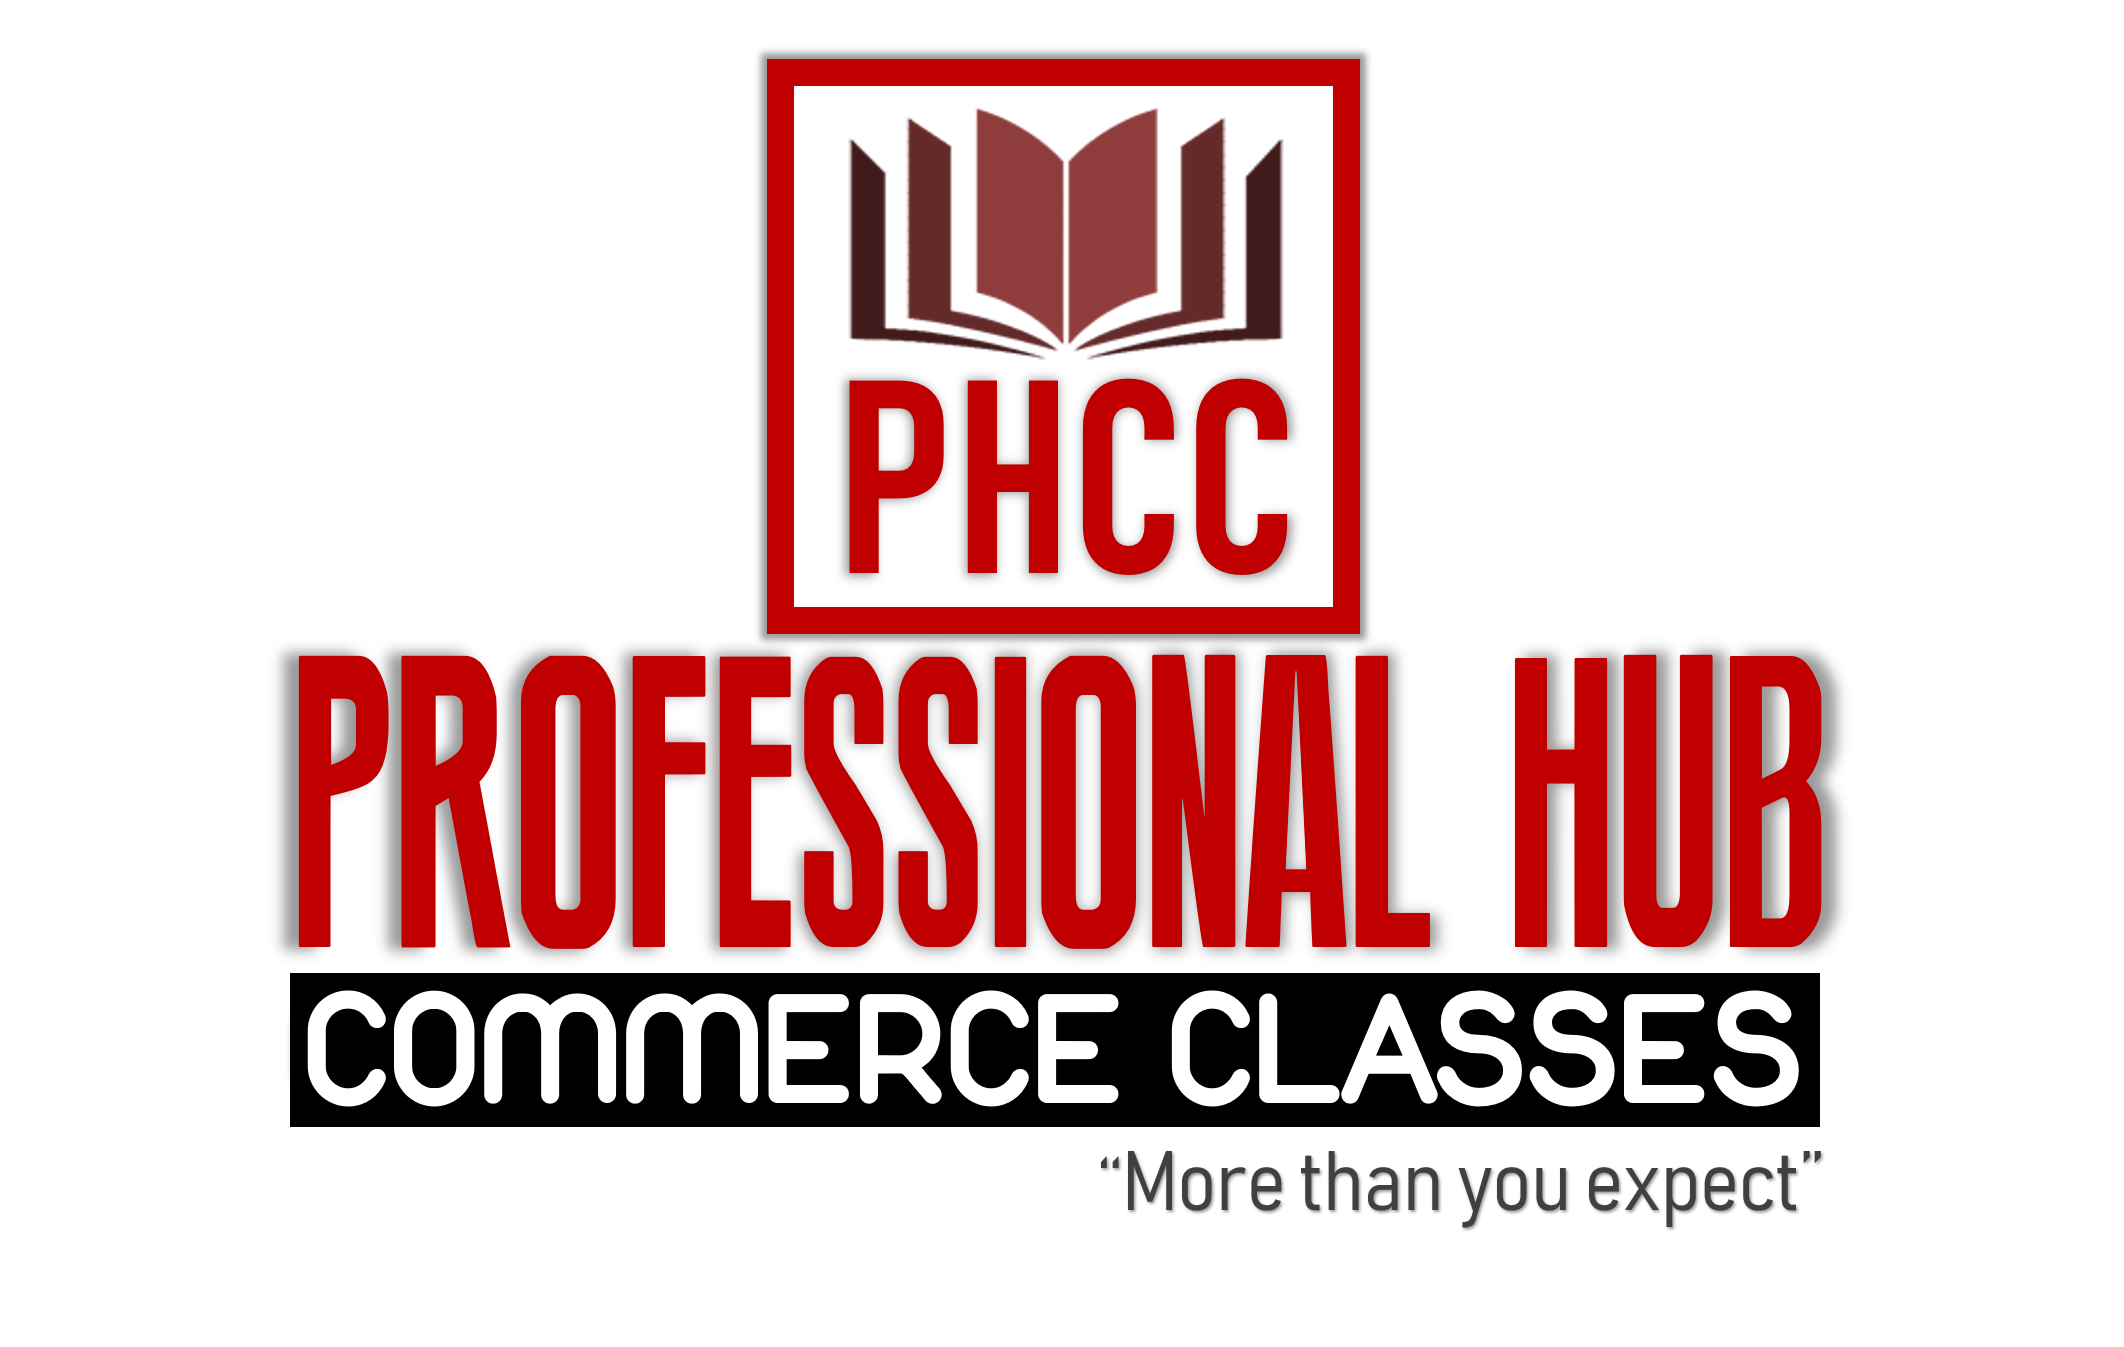 PROFESSIONAL HUB COMMERCE CLASS